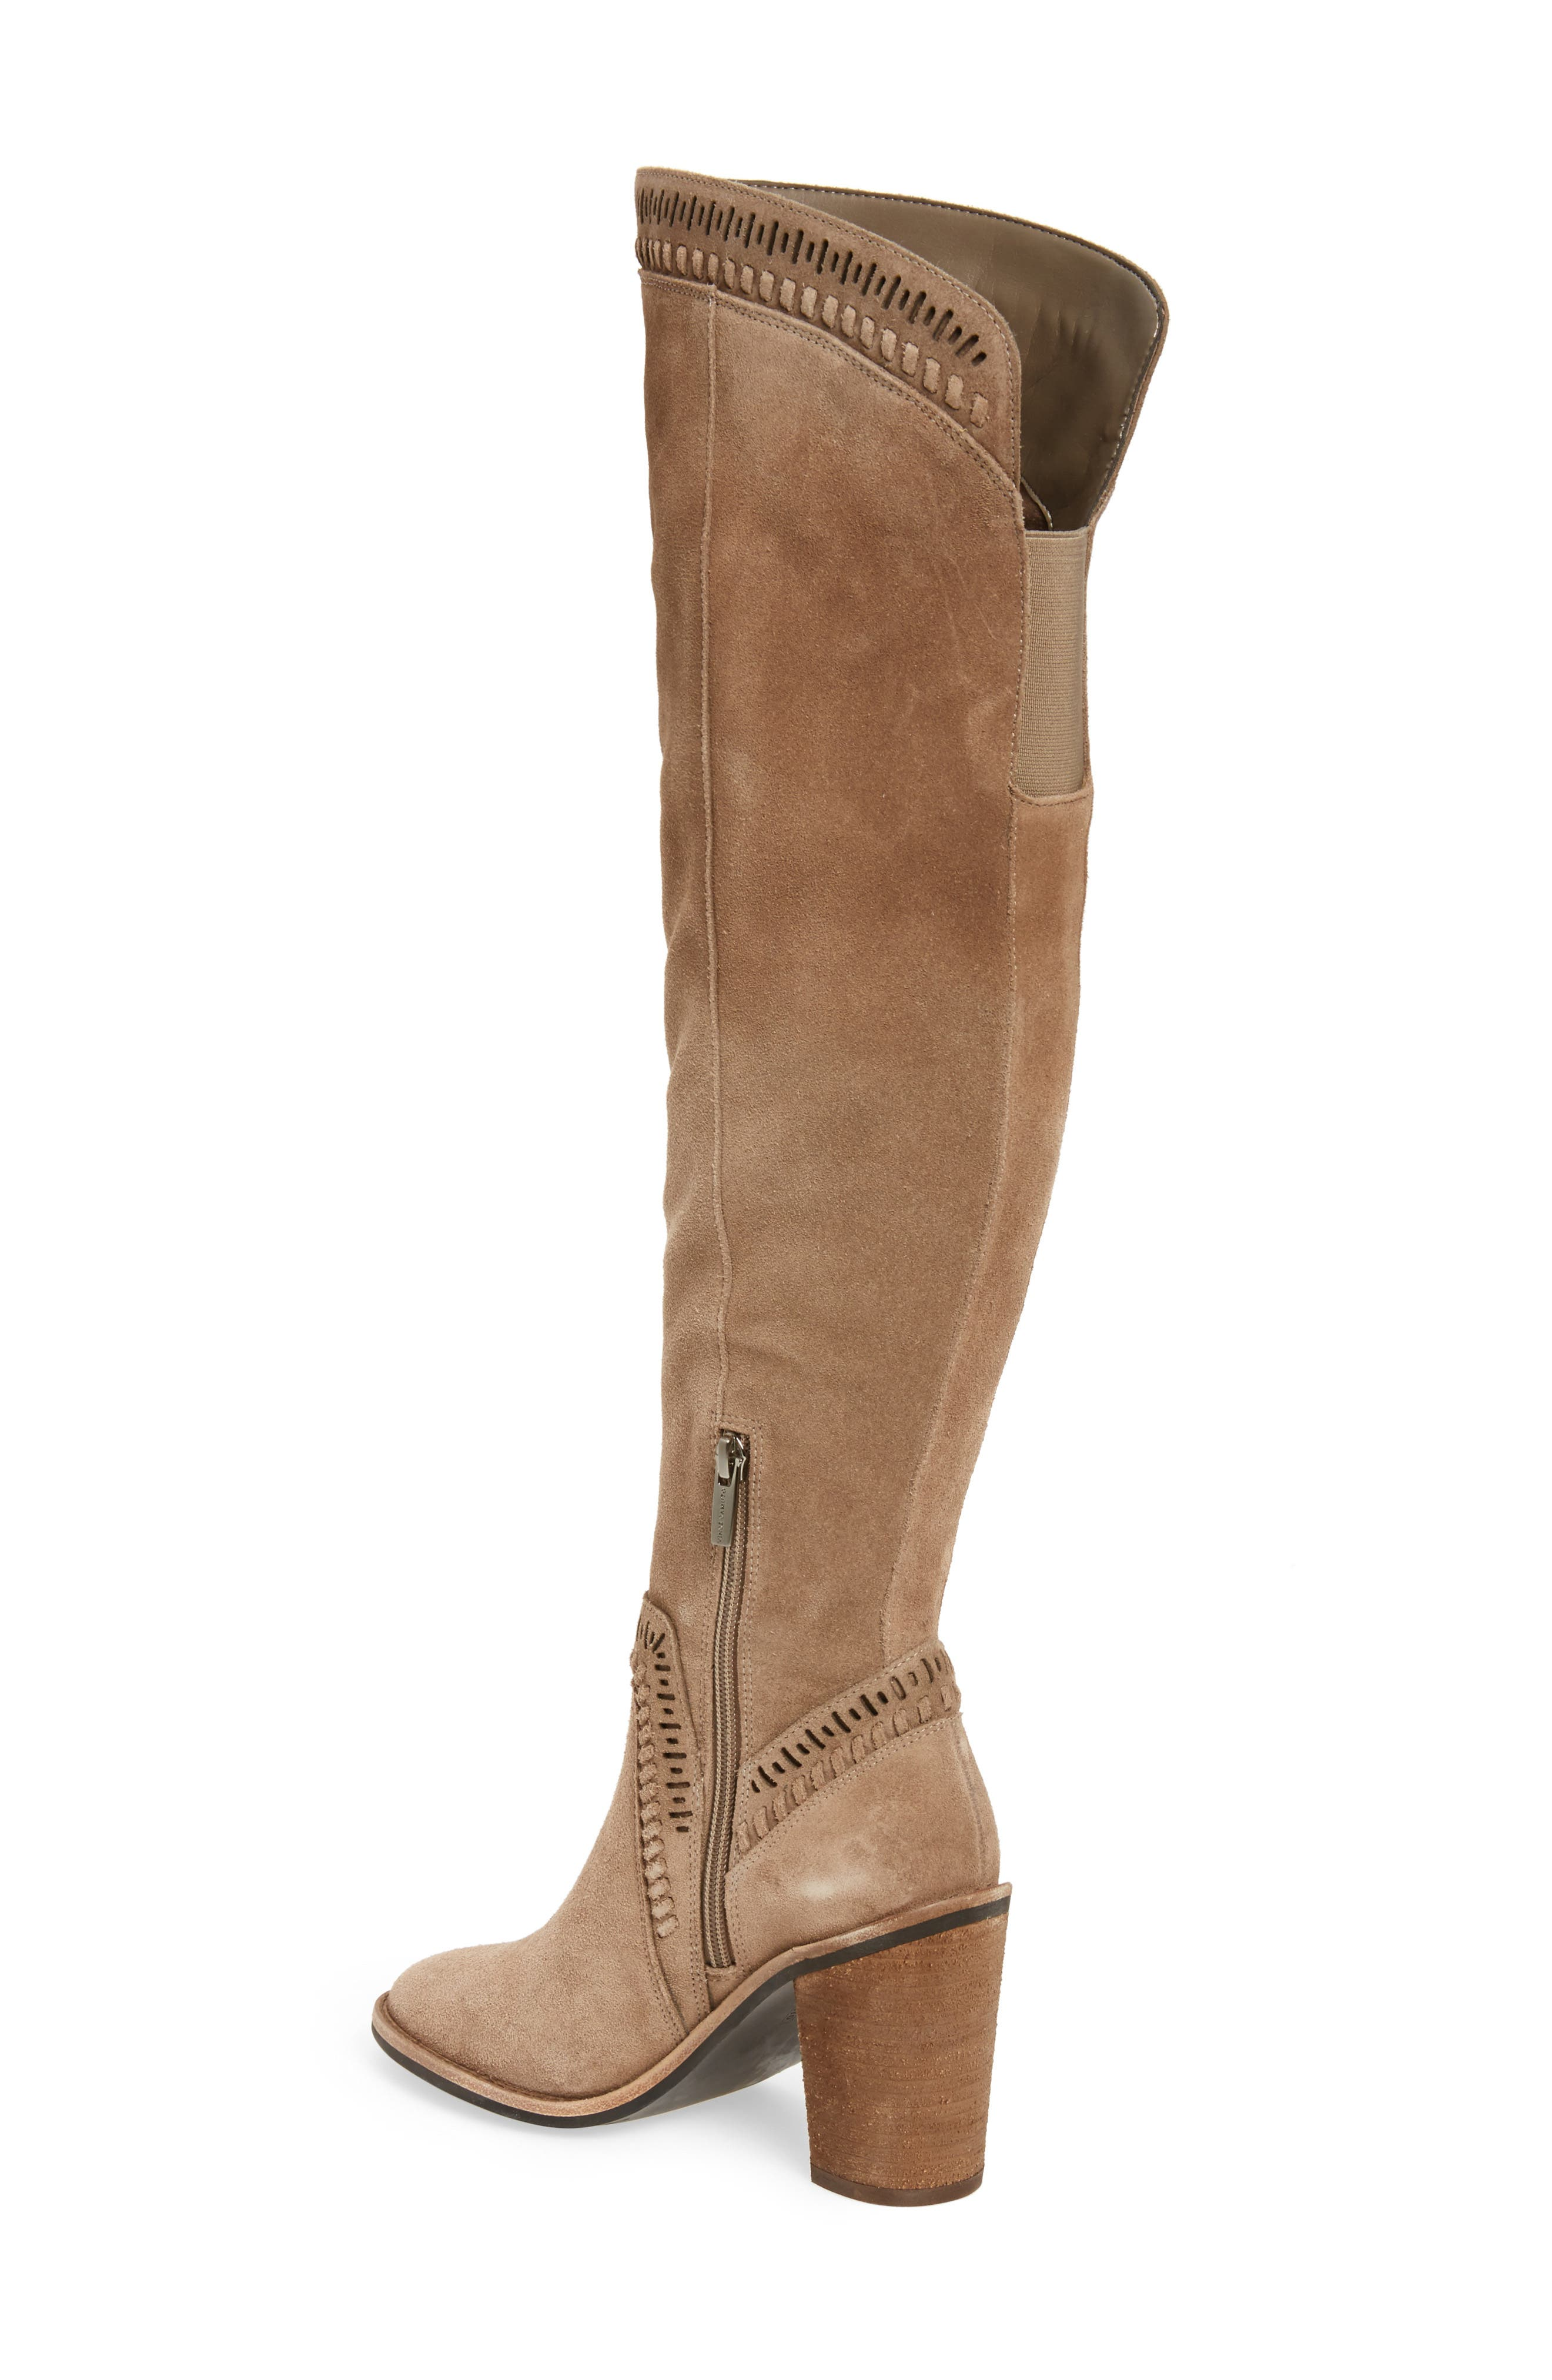 Madolee Over the Knee Boot,                             Alternate thumbnail 7, color,